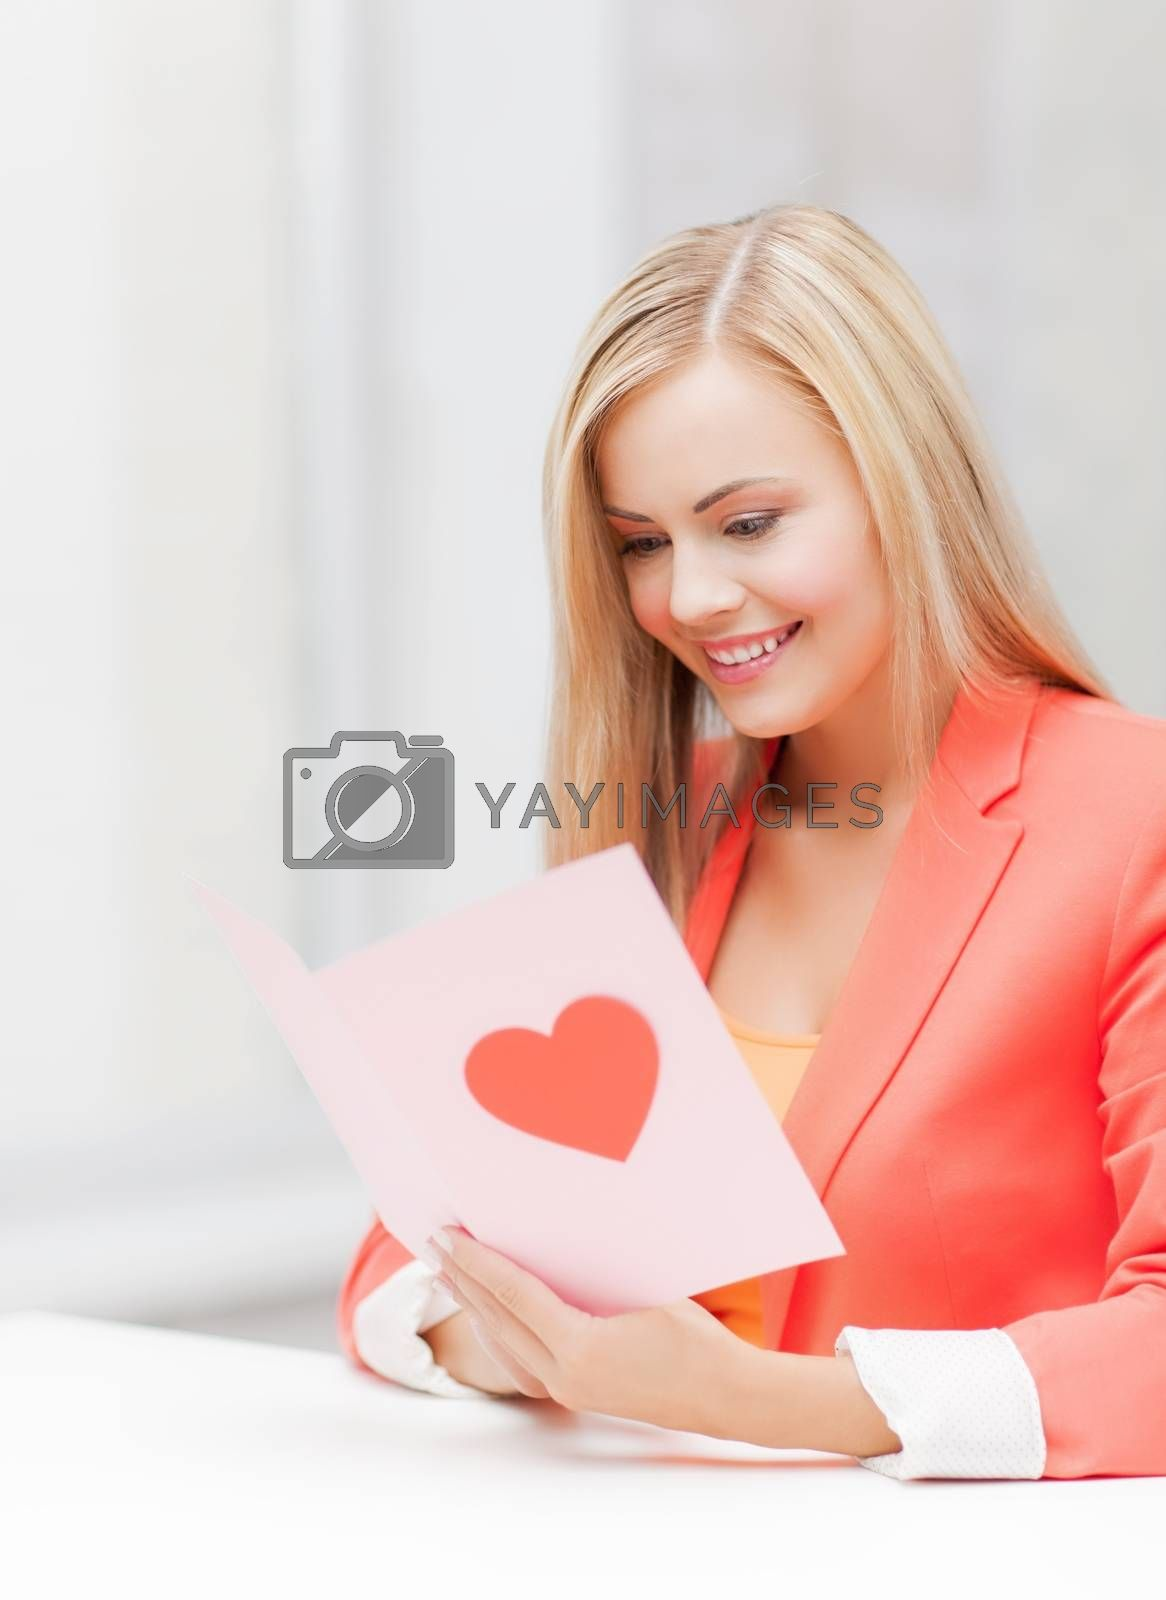 woman holding postcard with heart shape by dolgachov